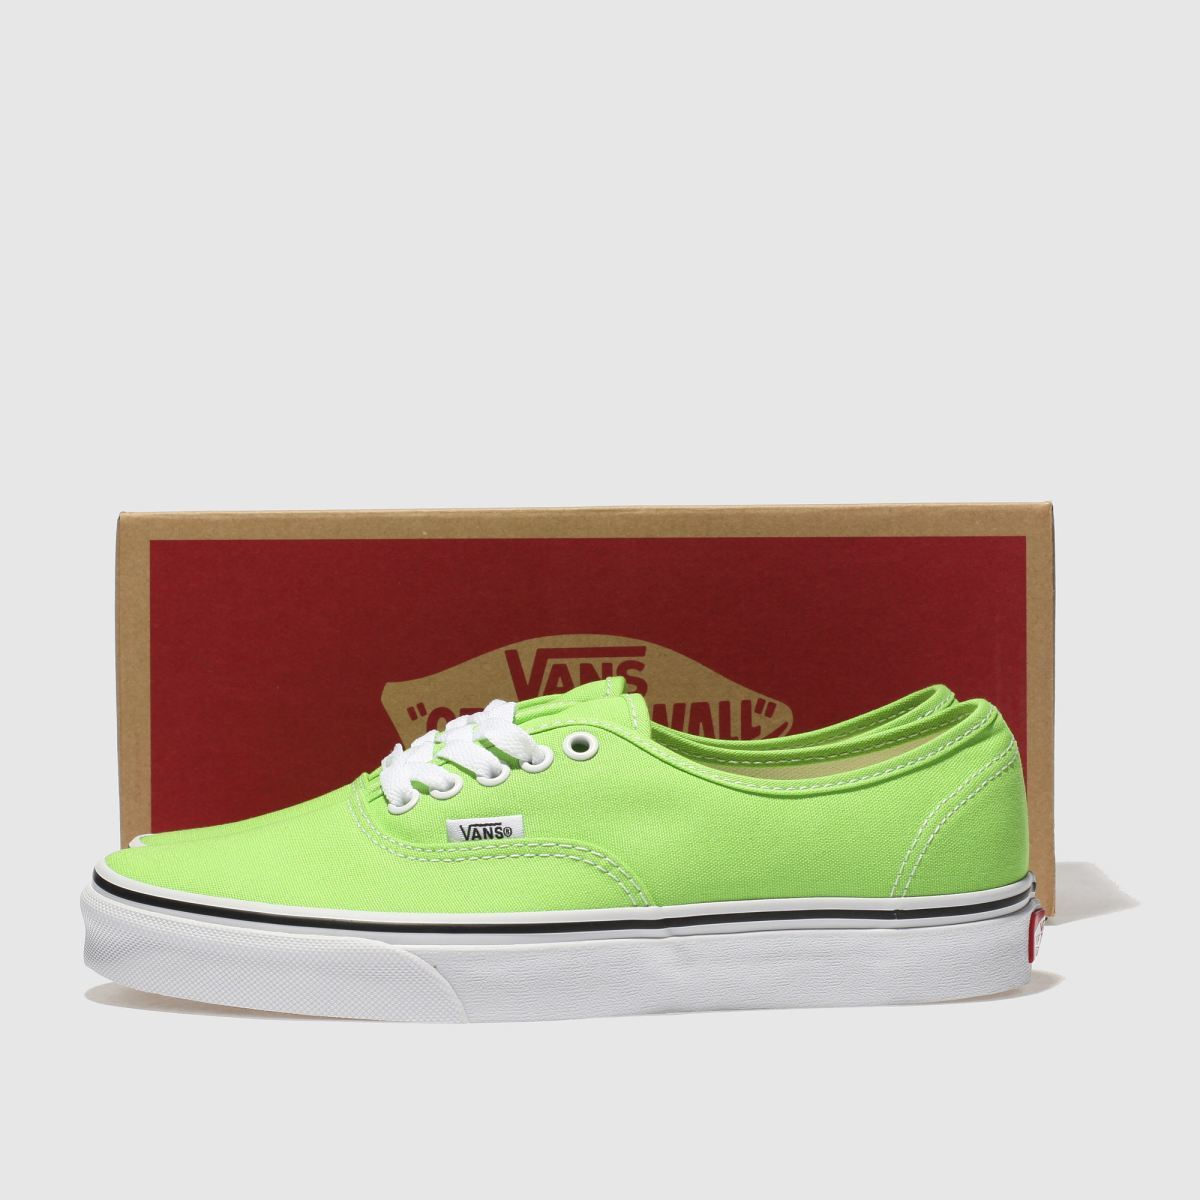 Details about Vans Authentic Trainers In Green Women's UK 4